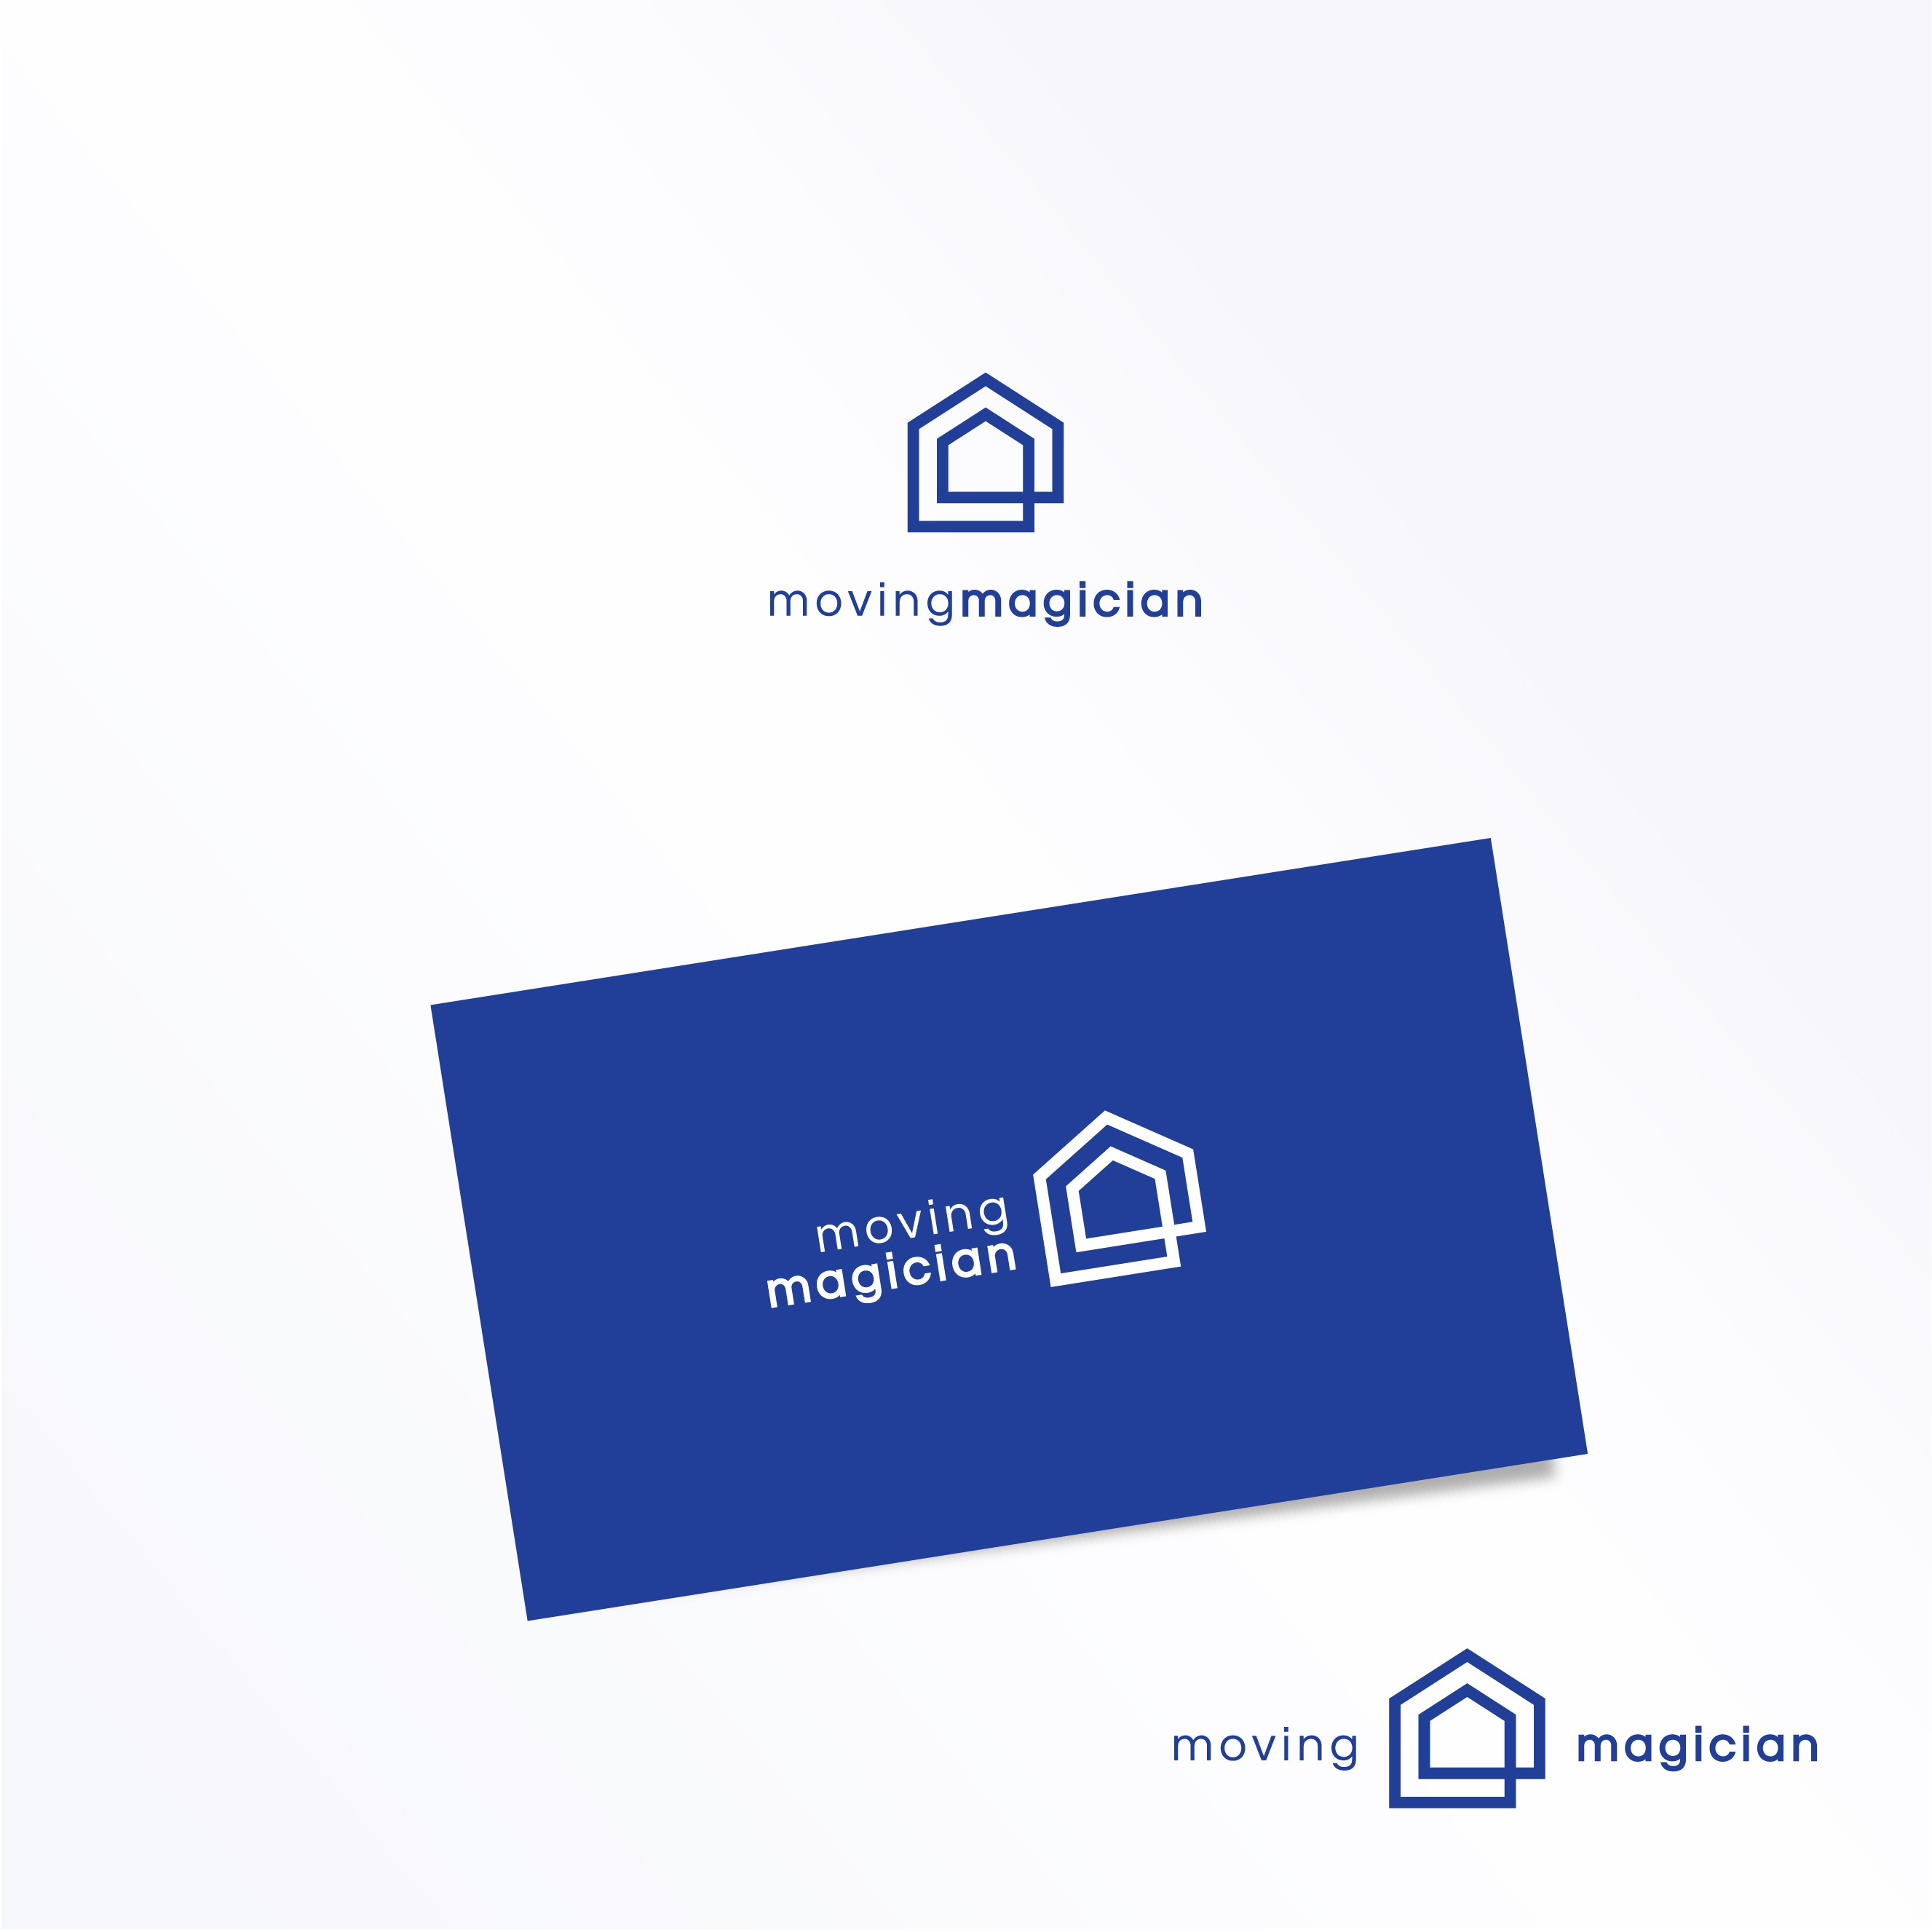 MOVINGMAGICIAN TAKES AWAY YOUR MOVING AND DOWNSIZING STRESS-NEEDS A LOGO